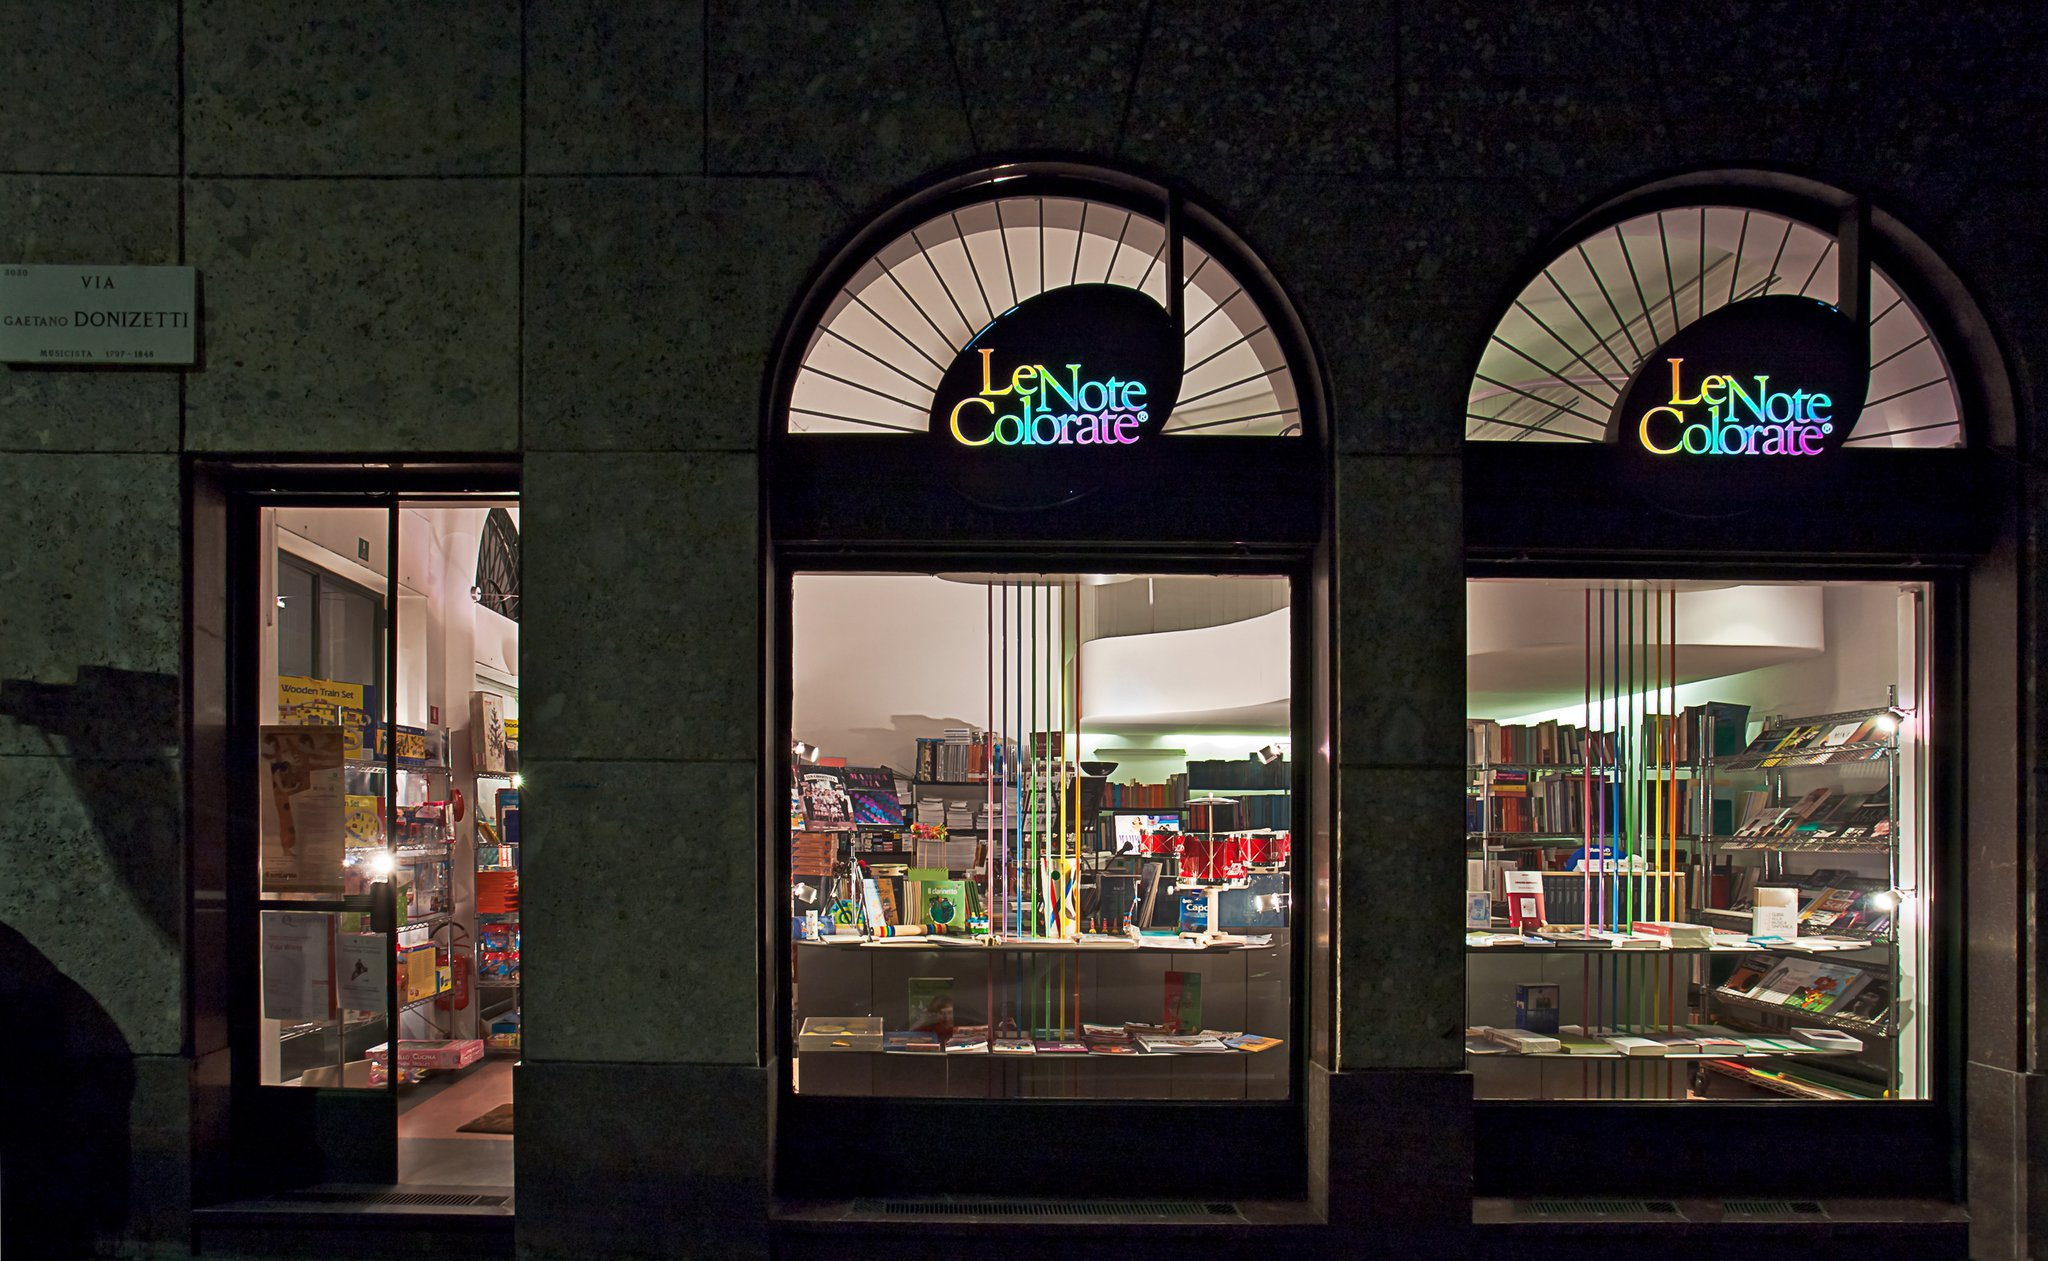 Le note colorate – La libreria della musica - Urban c233b8bc98b